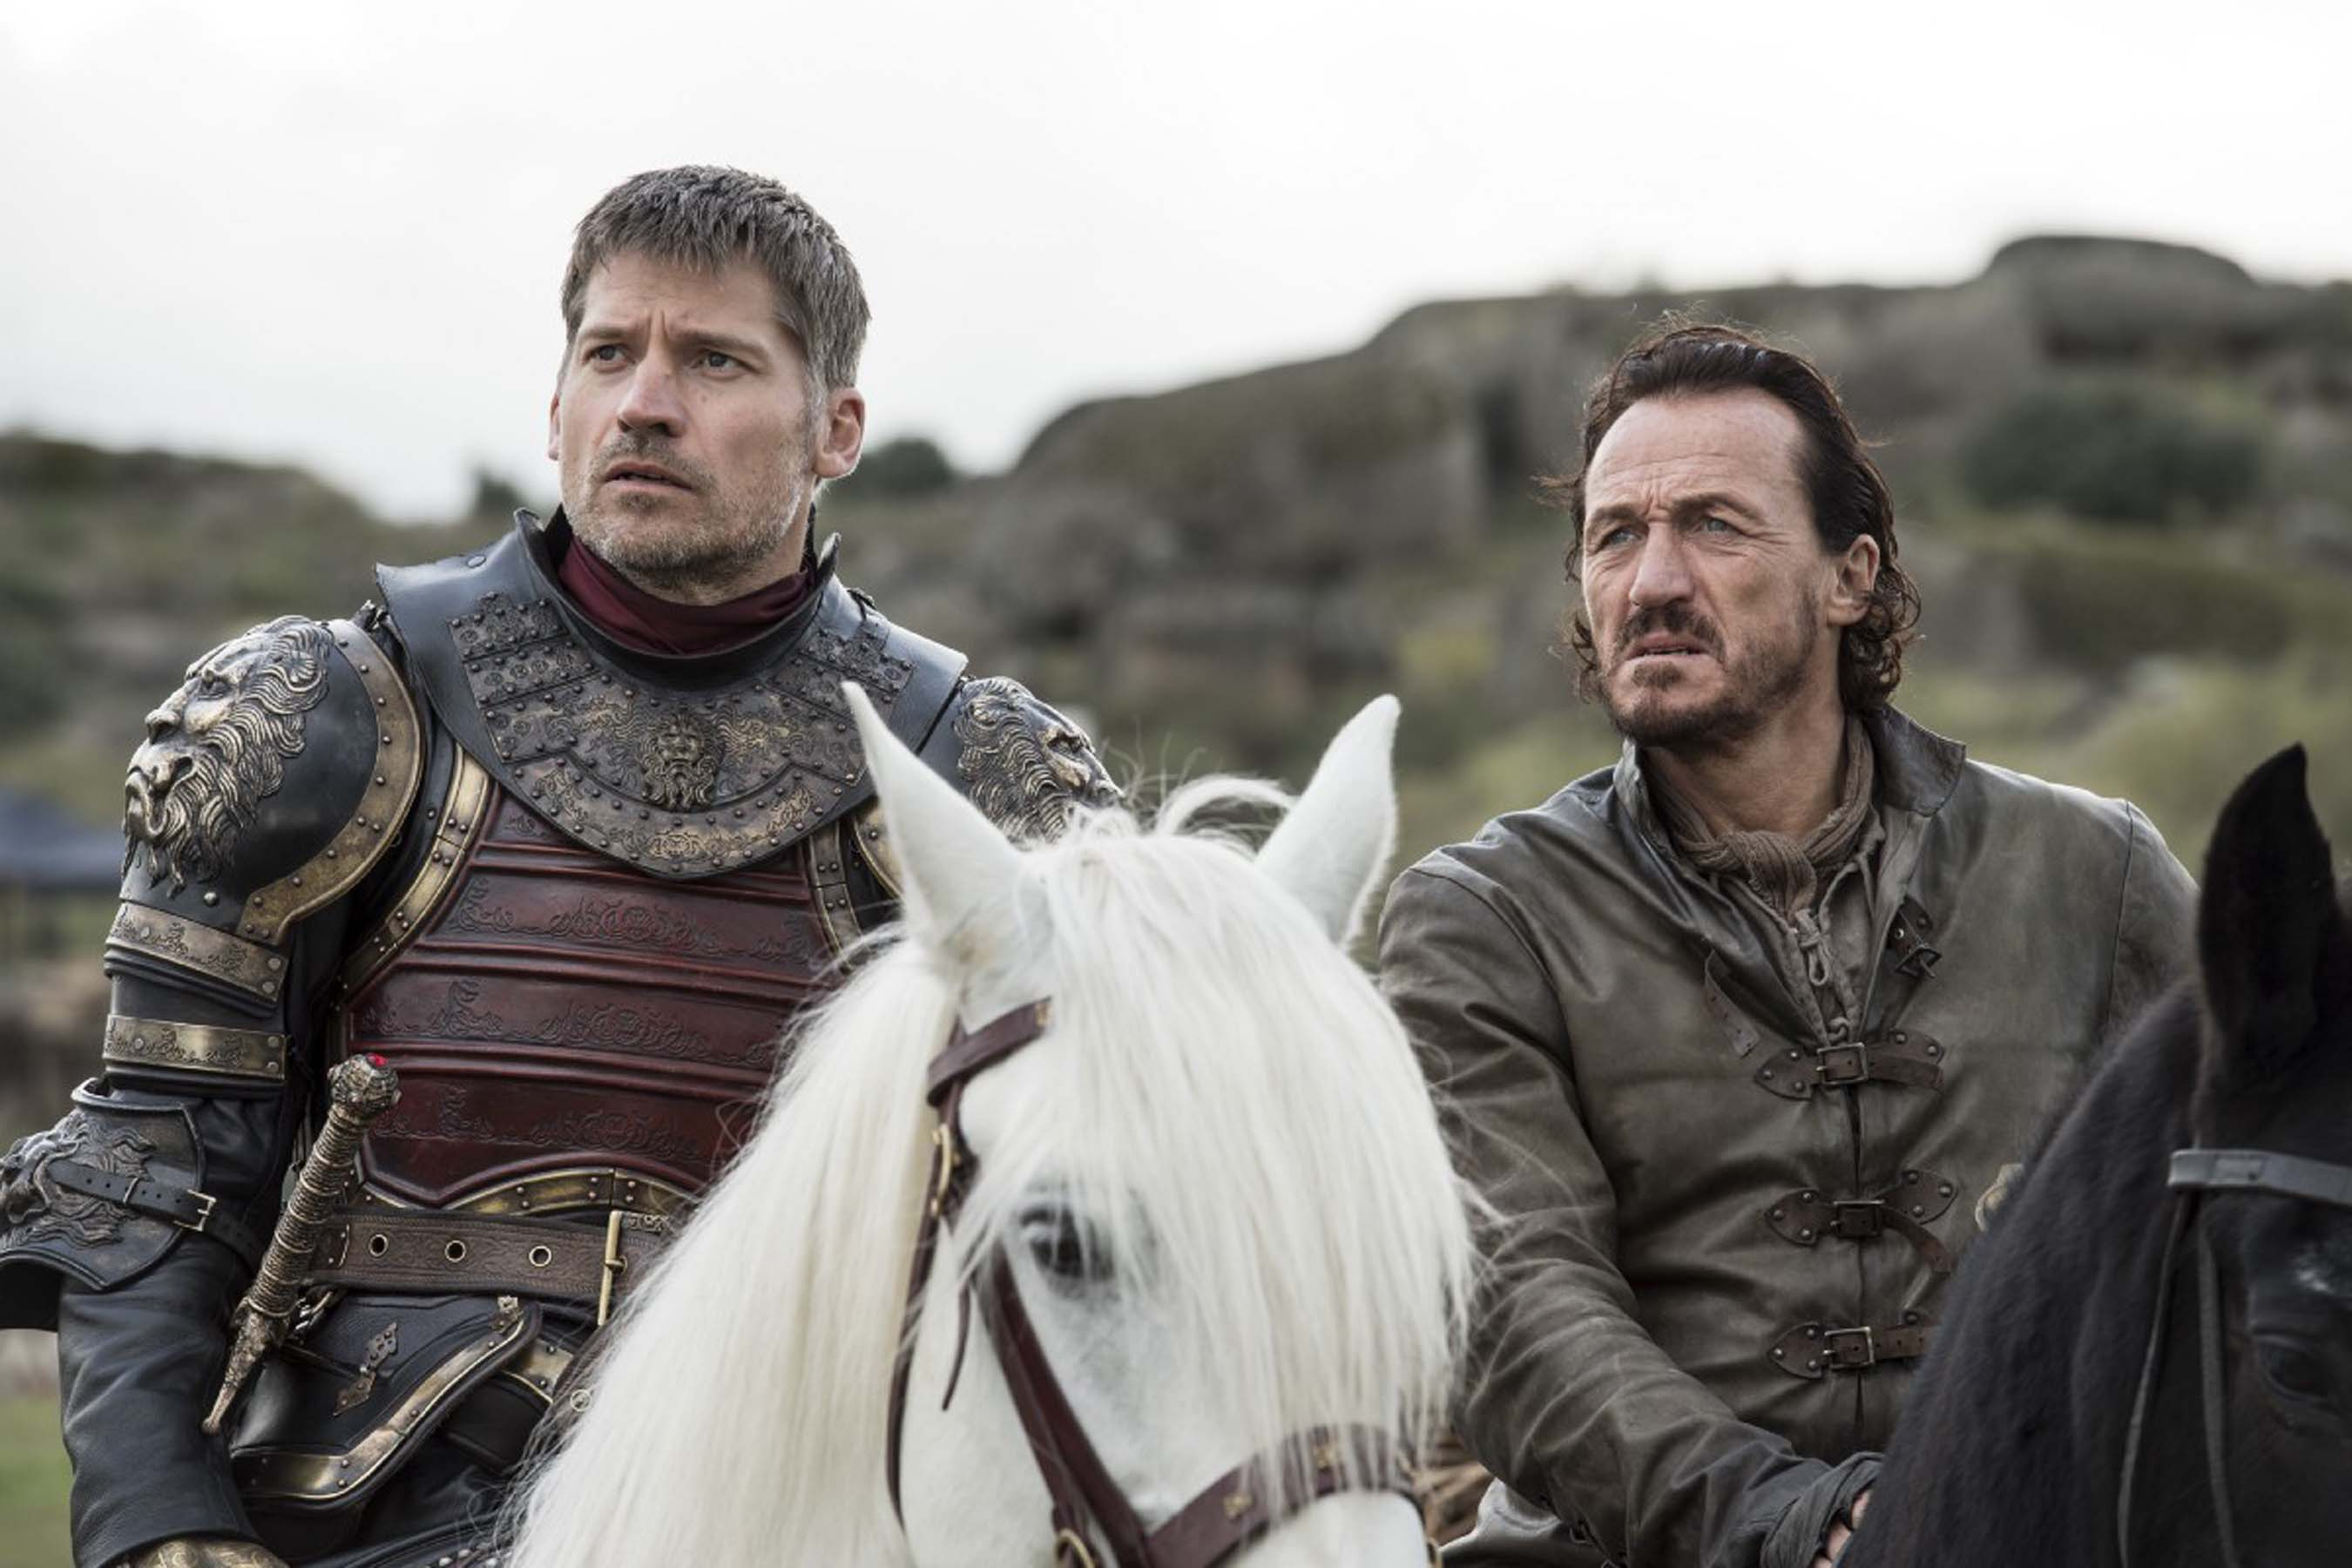 Jamie and Bronn prepare to face the Dothraki